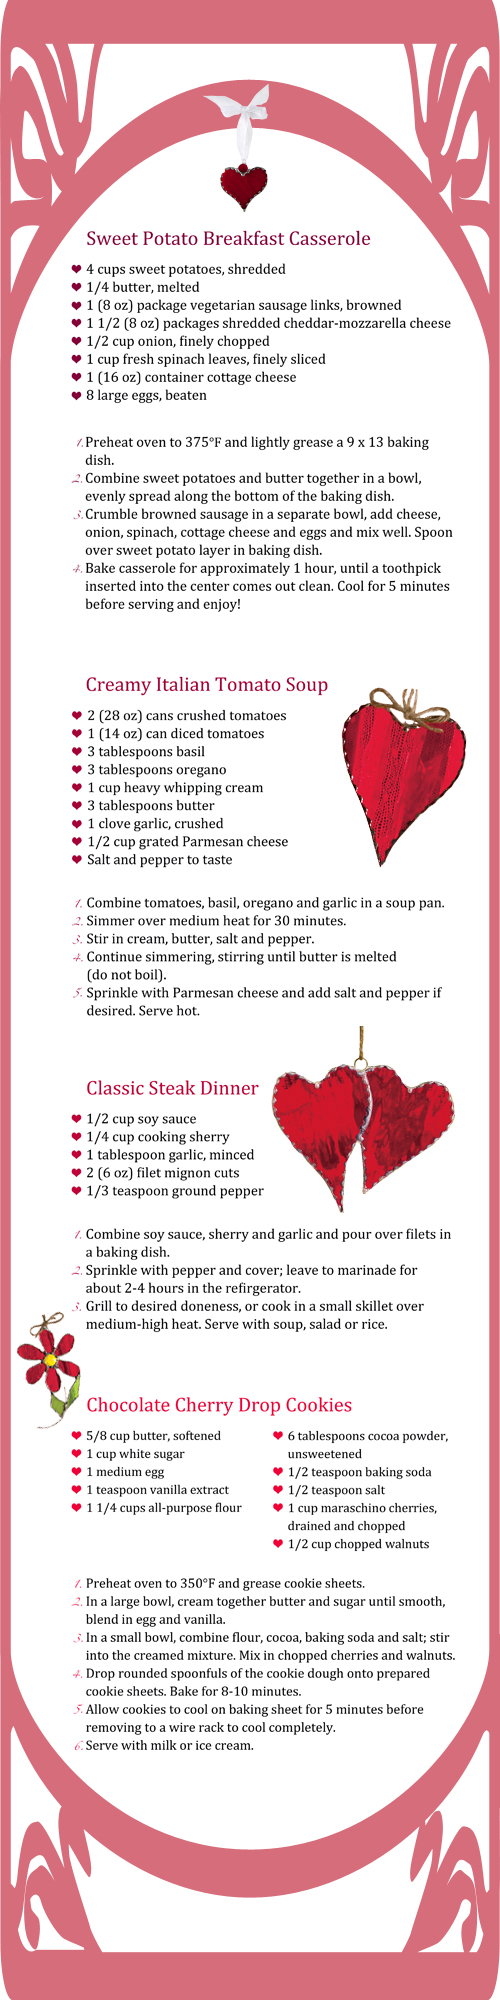 Sweetheart Recipes for Valentine's Day